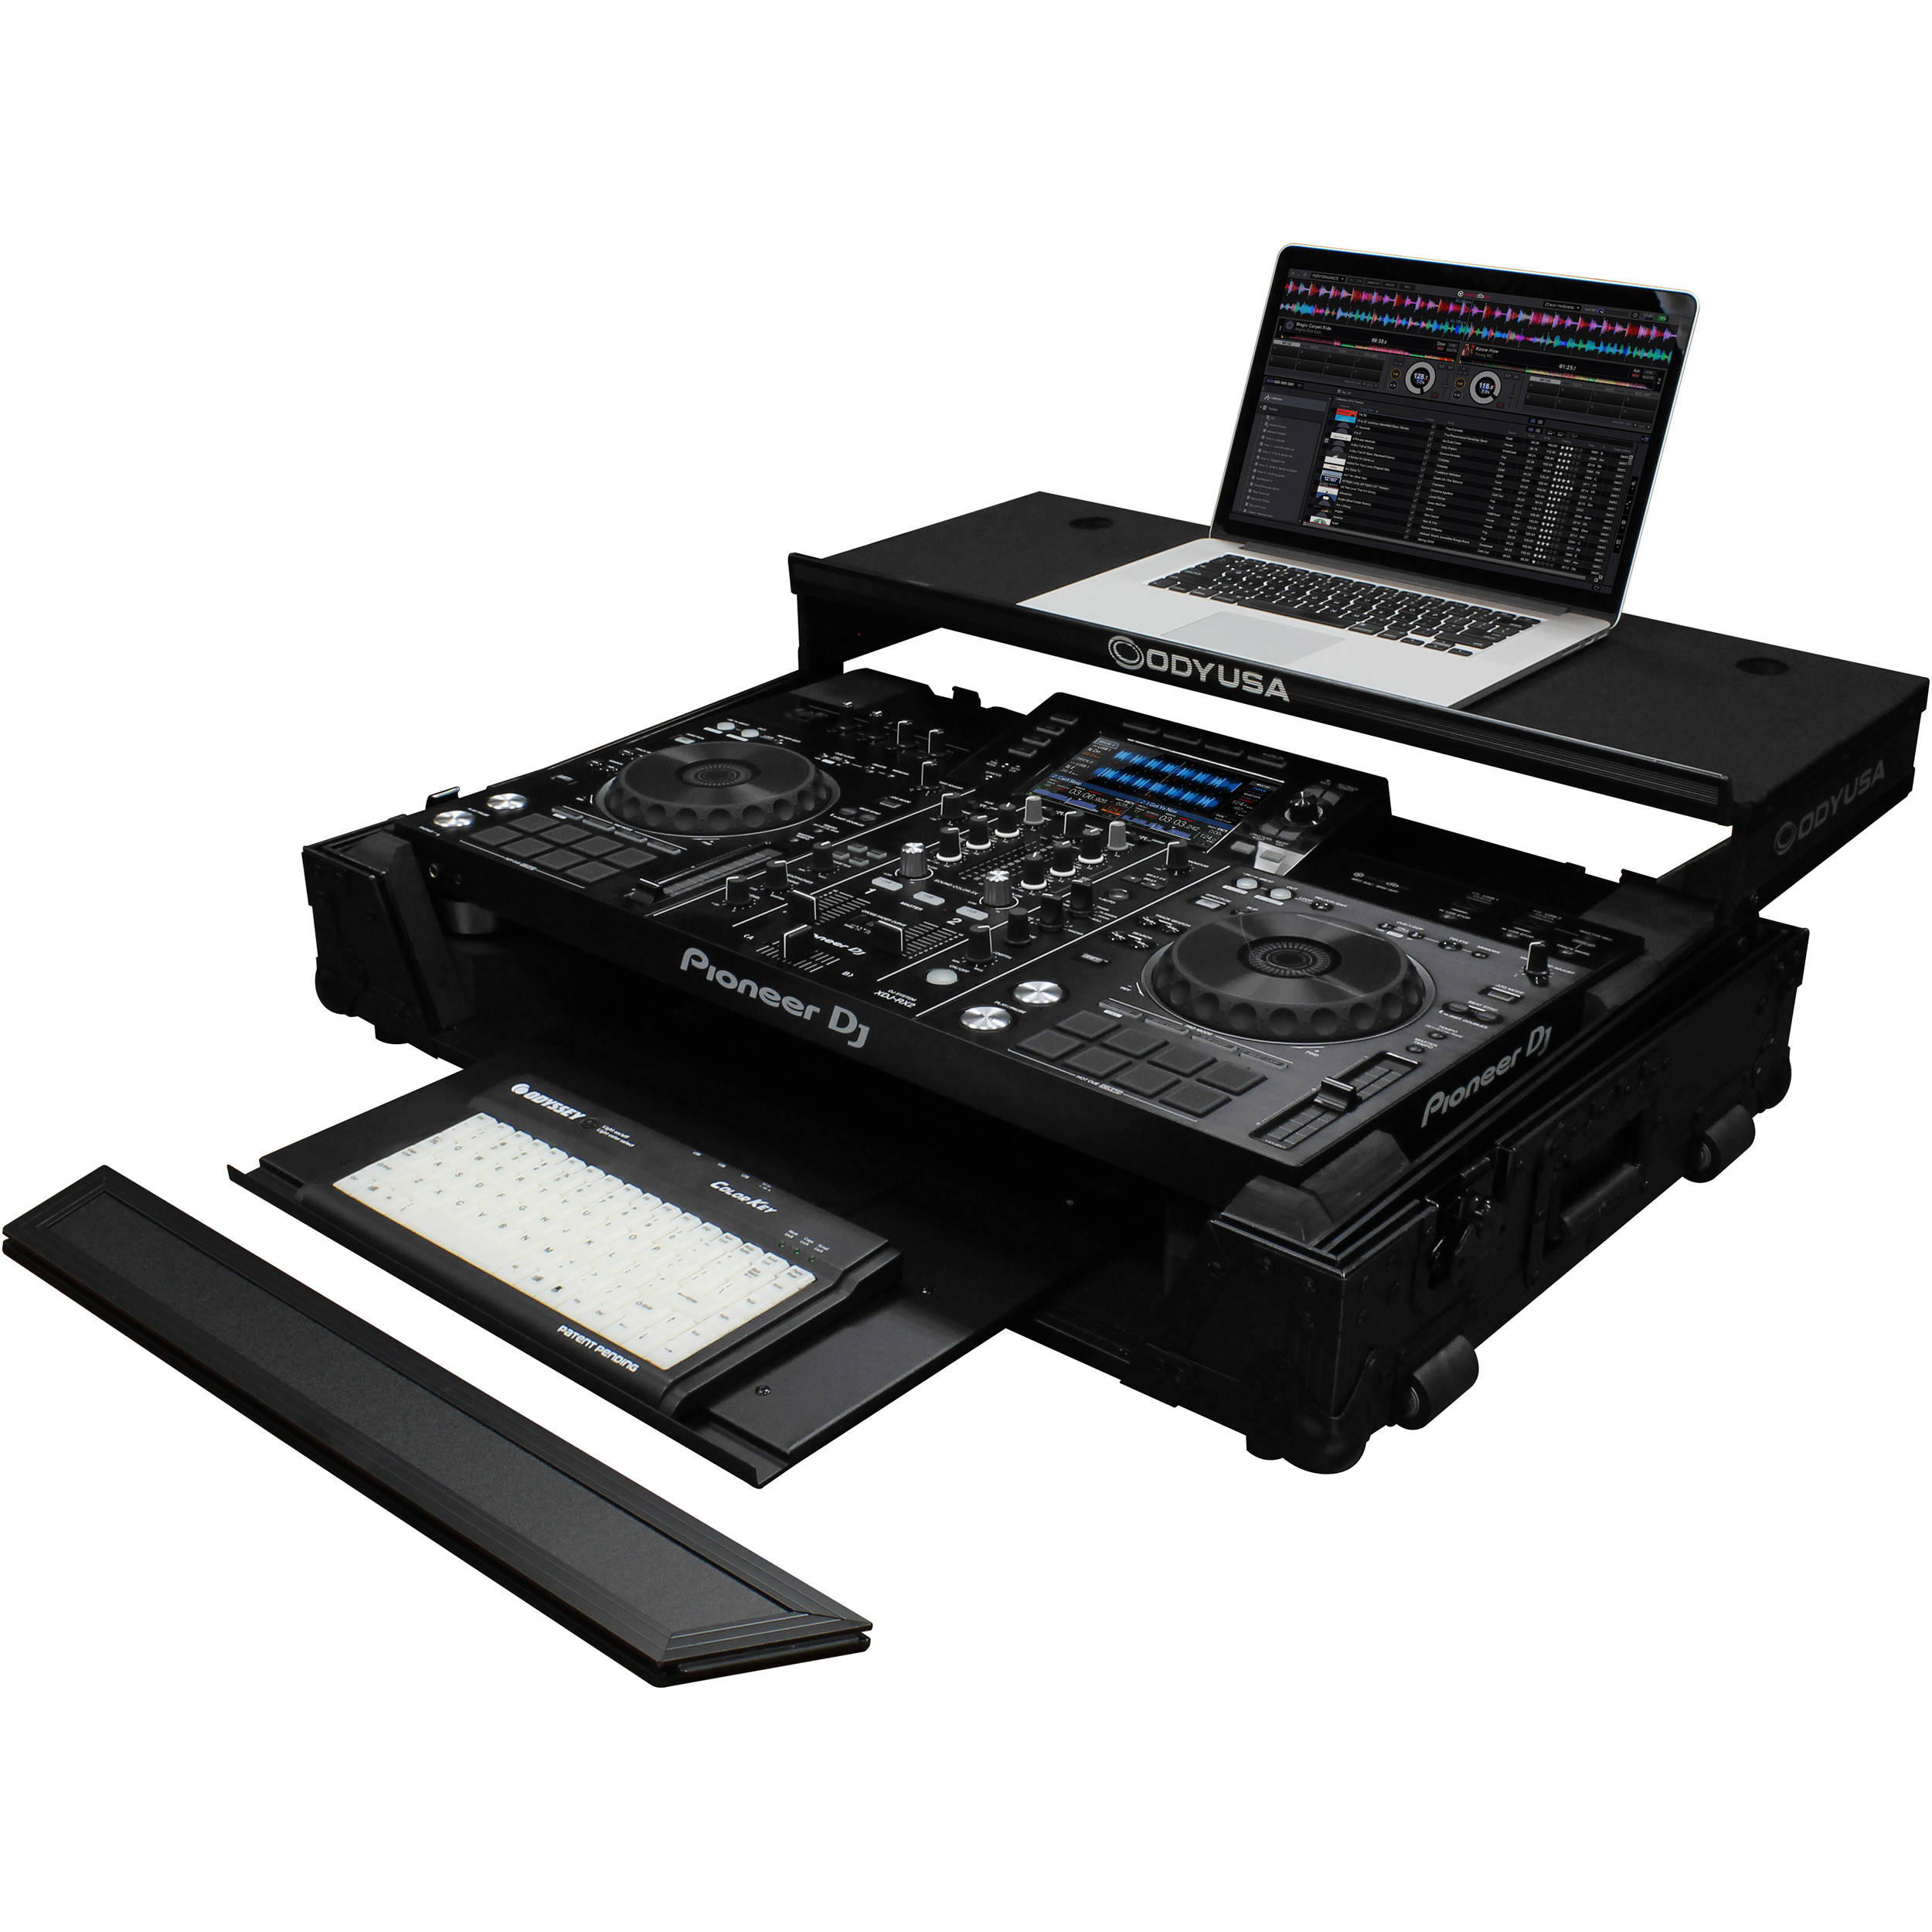 Odyssey Innovative Designs Black Label Glide Fzgsxdjrx2gtwbl Bh Gt Enclosures Panels Boards Electrical Boxes Style Case For Pioneer Xdj Rx2 Controller With Bottom